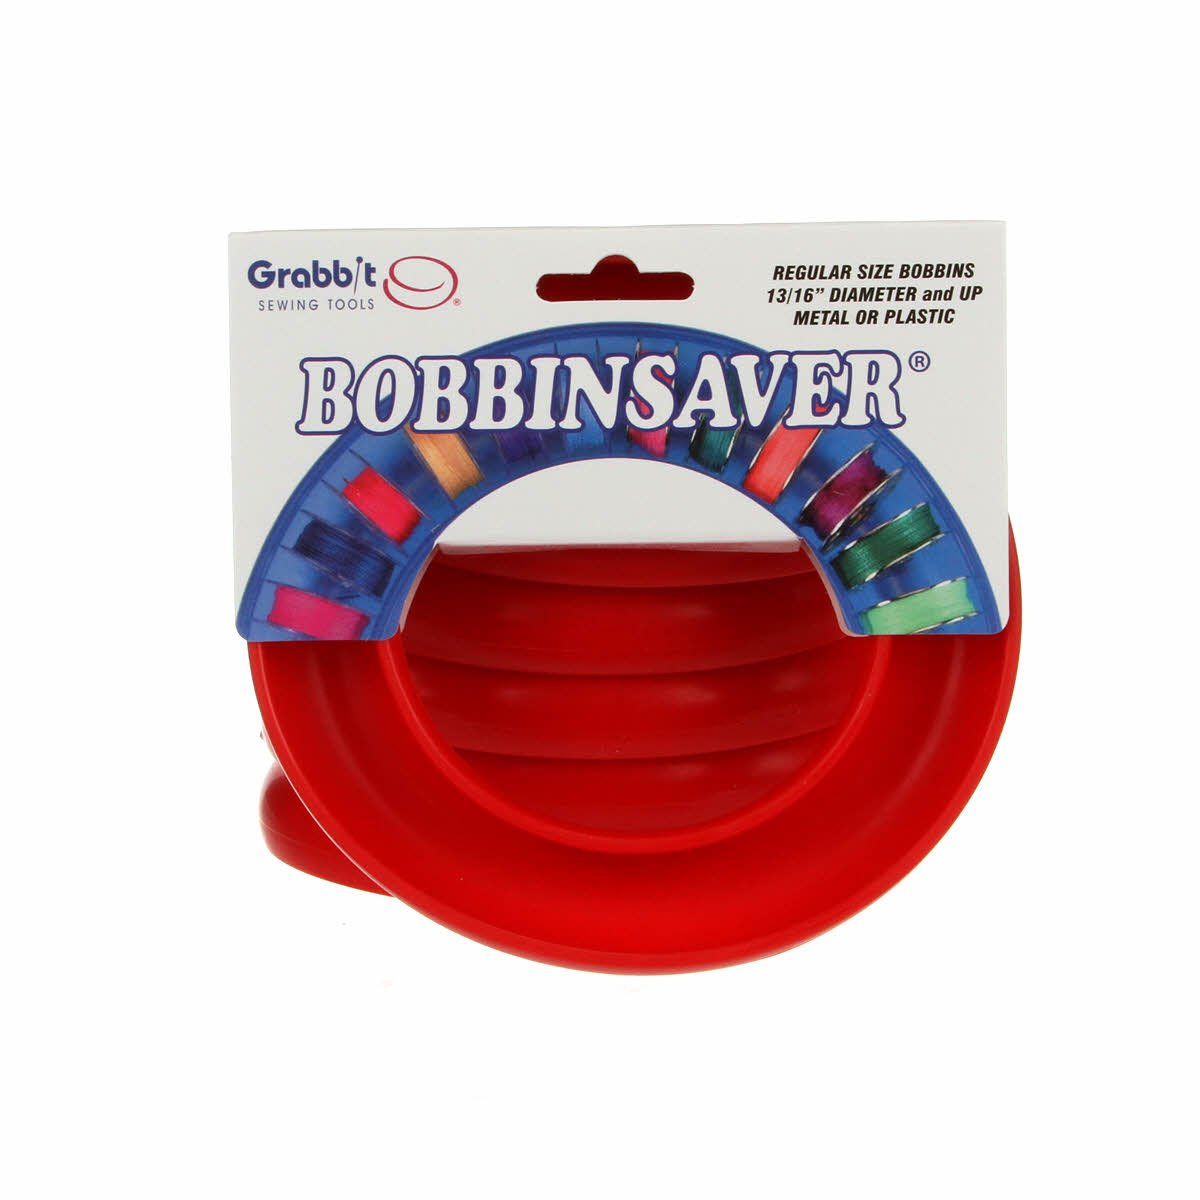 BOBBIN SAVER UNIVERSAL BOBBIN HOLDER BY GRABBIT Red